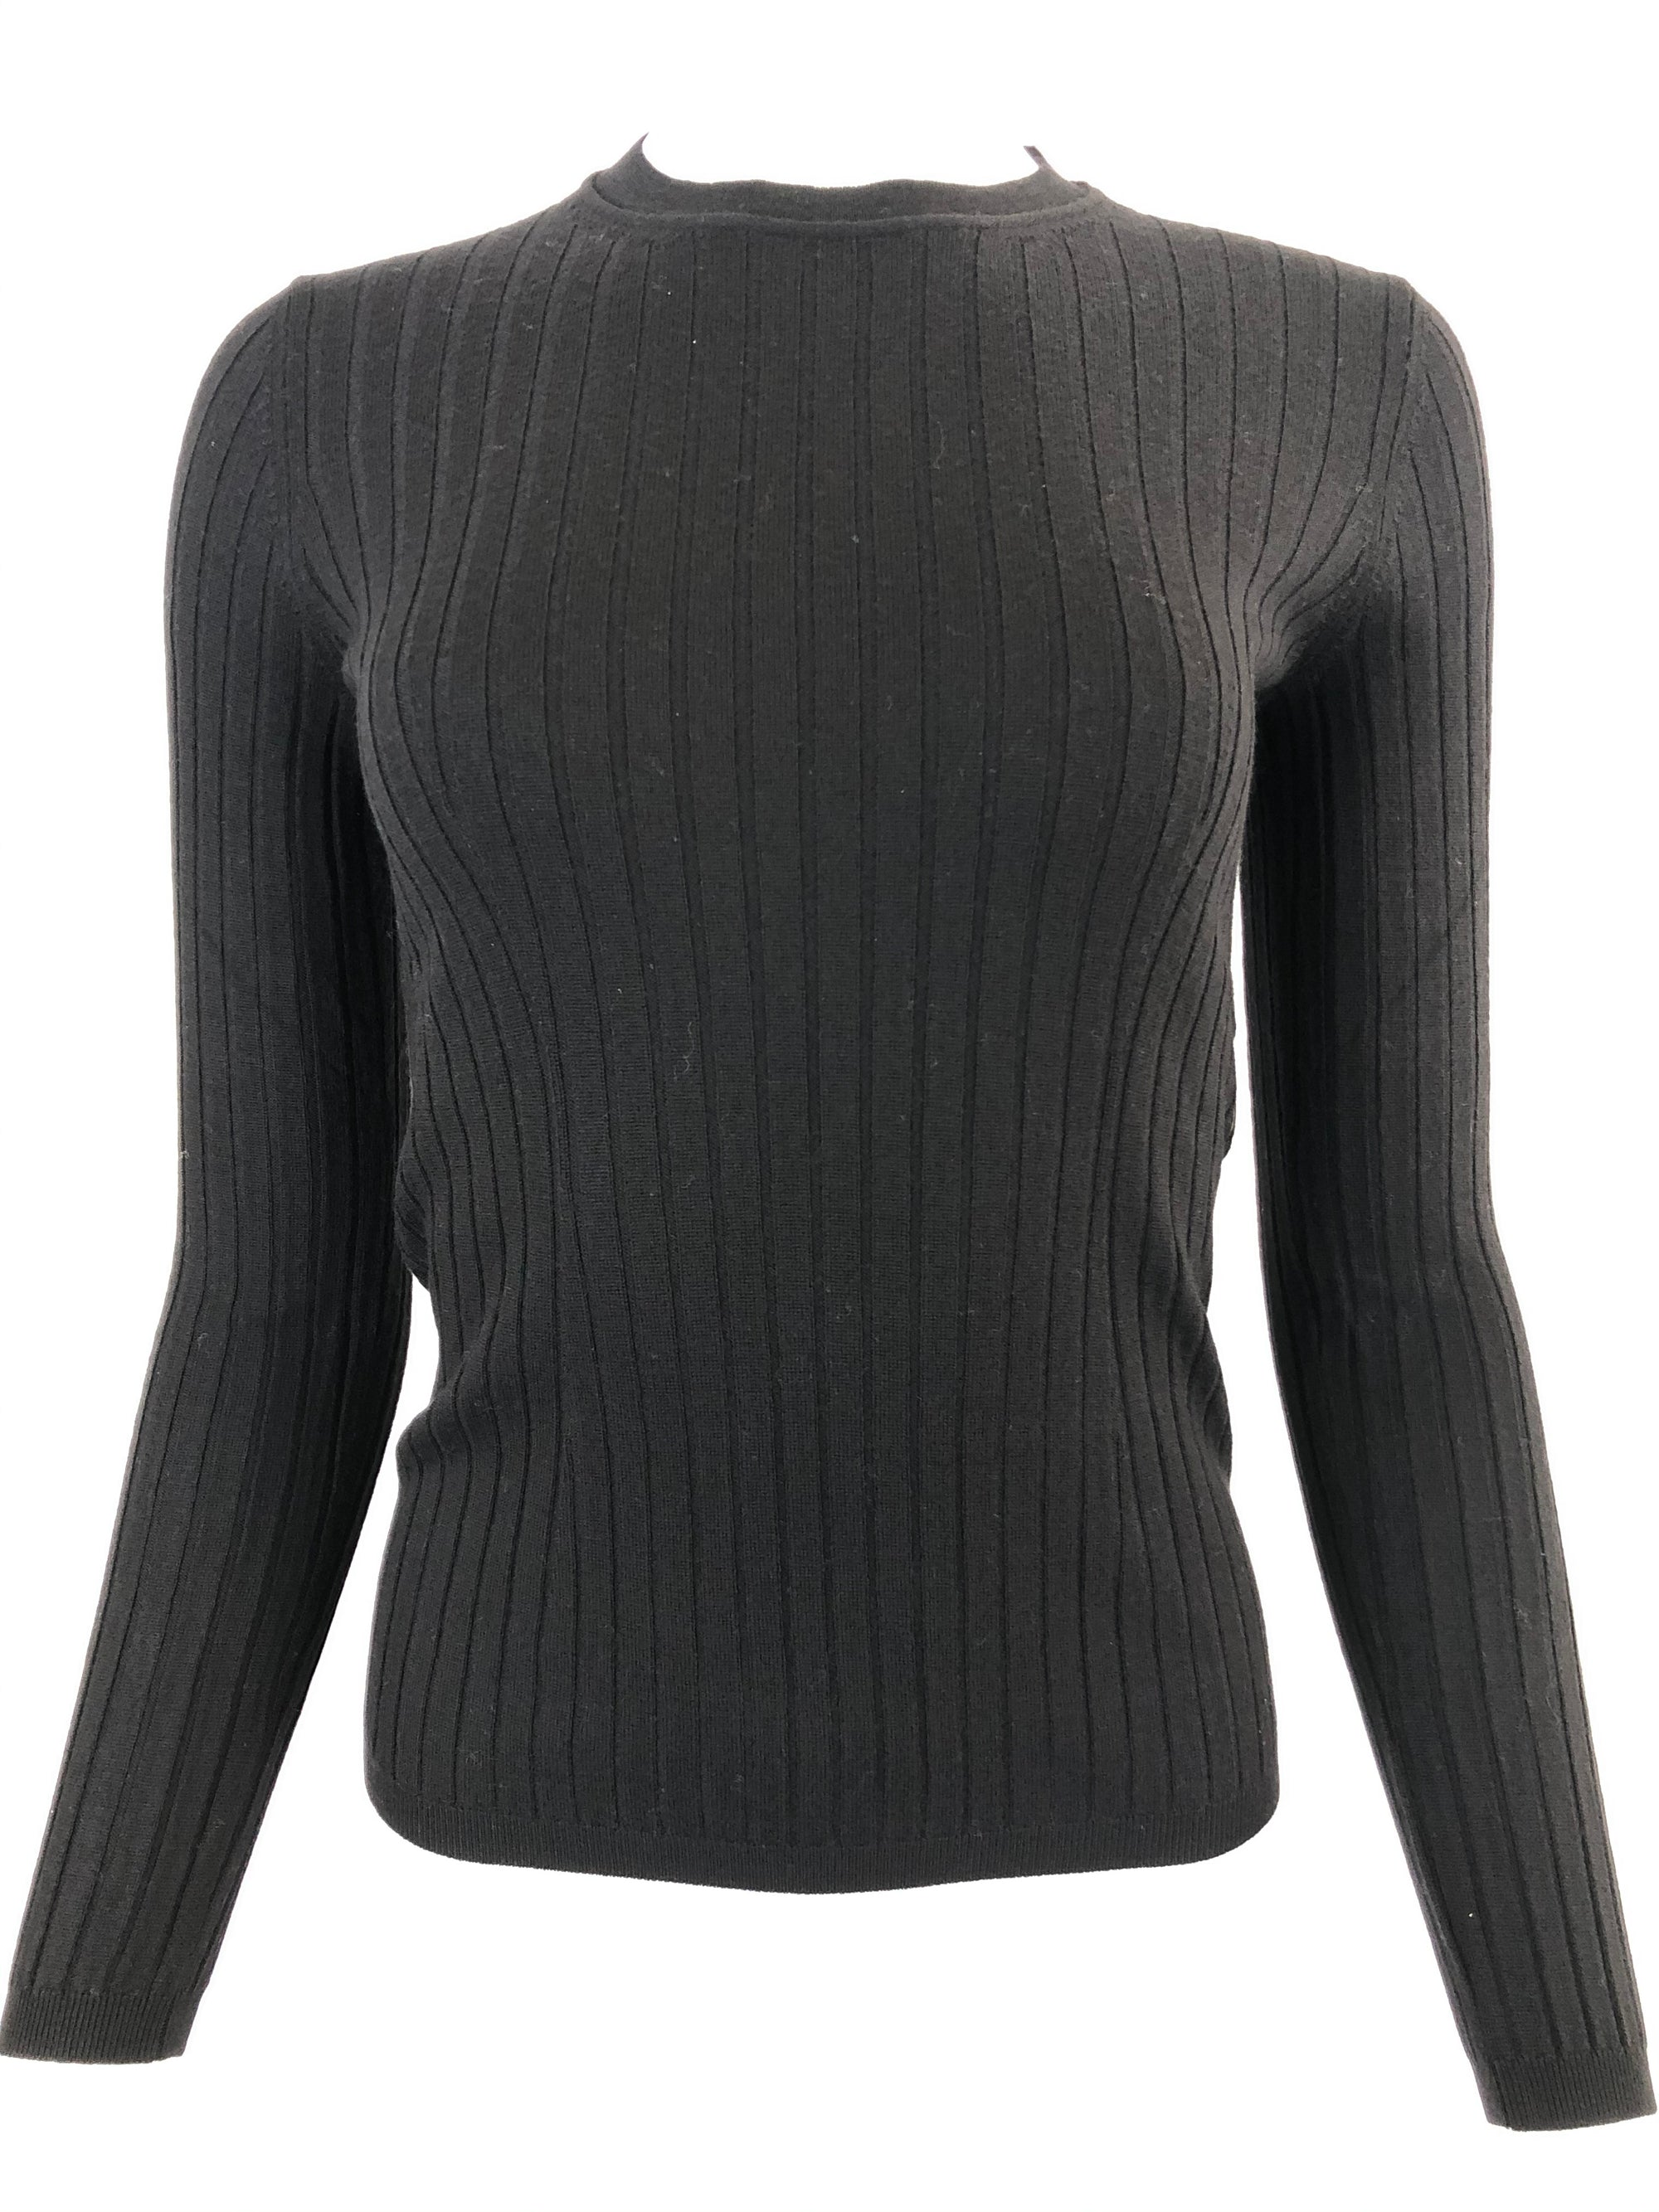 BRUNO MANETTI RIB CASHMERE CREW KNIT WOMEN'S SWEATER